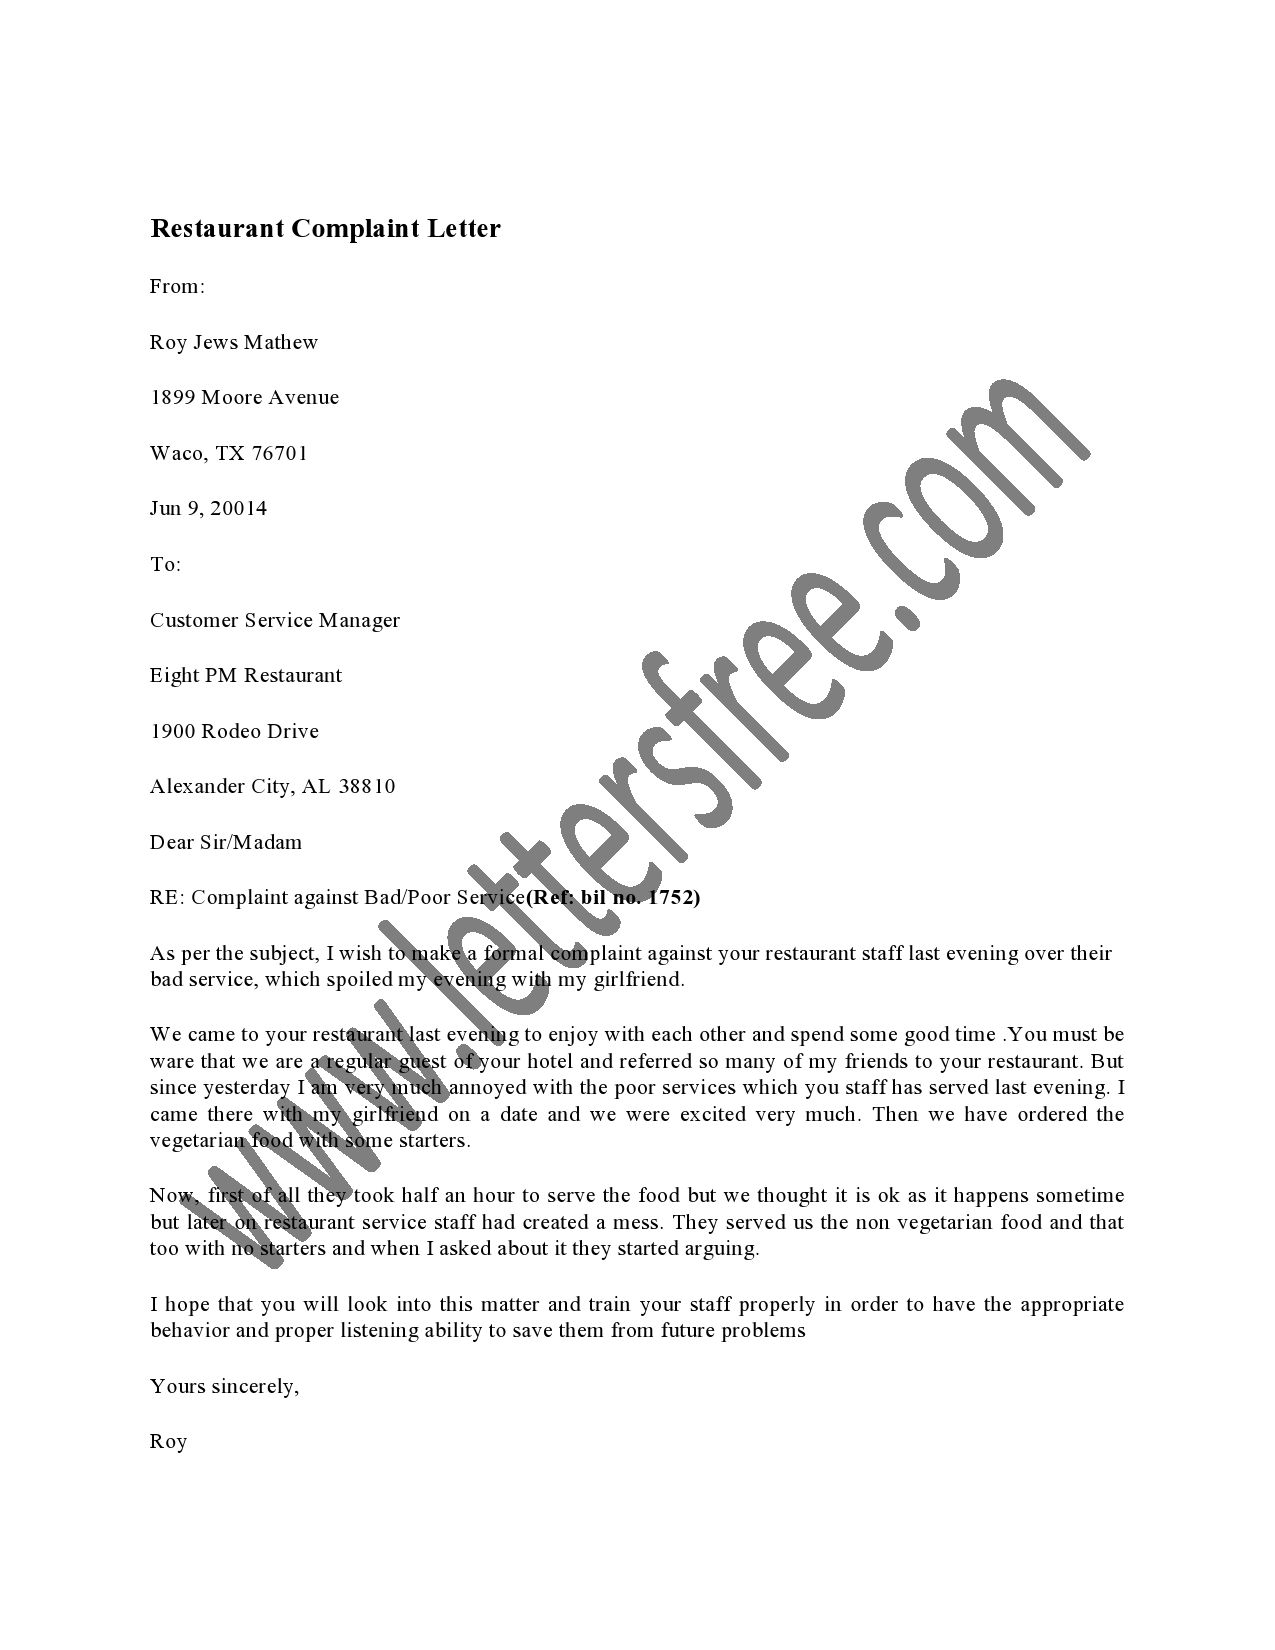 How to write a letter of complaint a restaurant complaint letter is a restaurant complaint letter is usually sent by a frustrated a restaurant complaint letter is usually altavistaventures Images